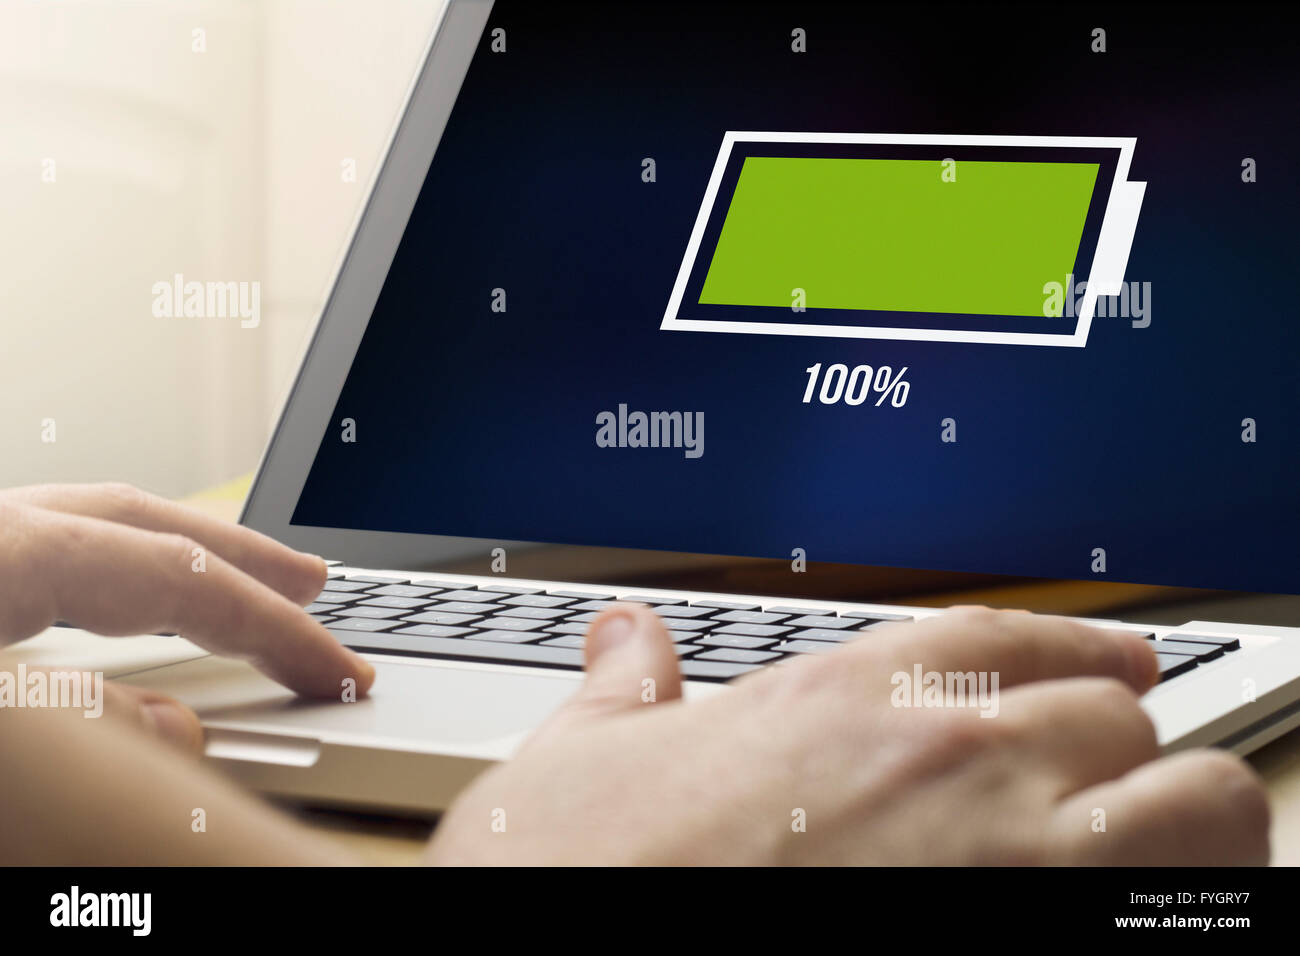 battery concept: man using a laptop with full battery on the screen. Screen graphics are made up. - Stock Image